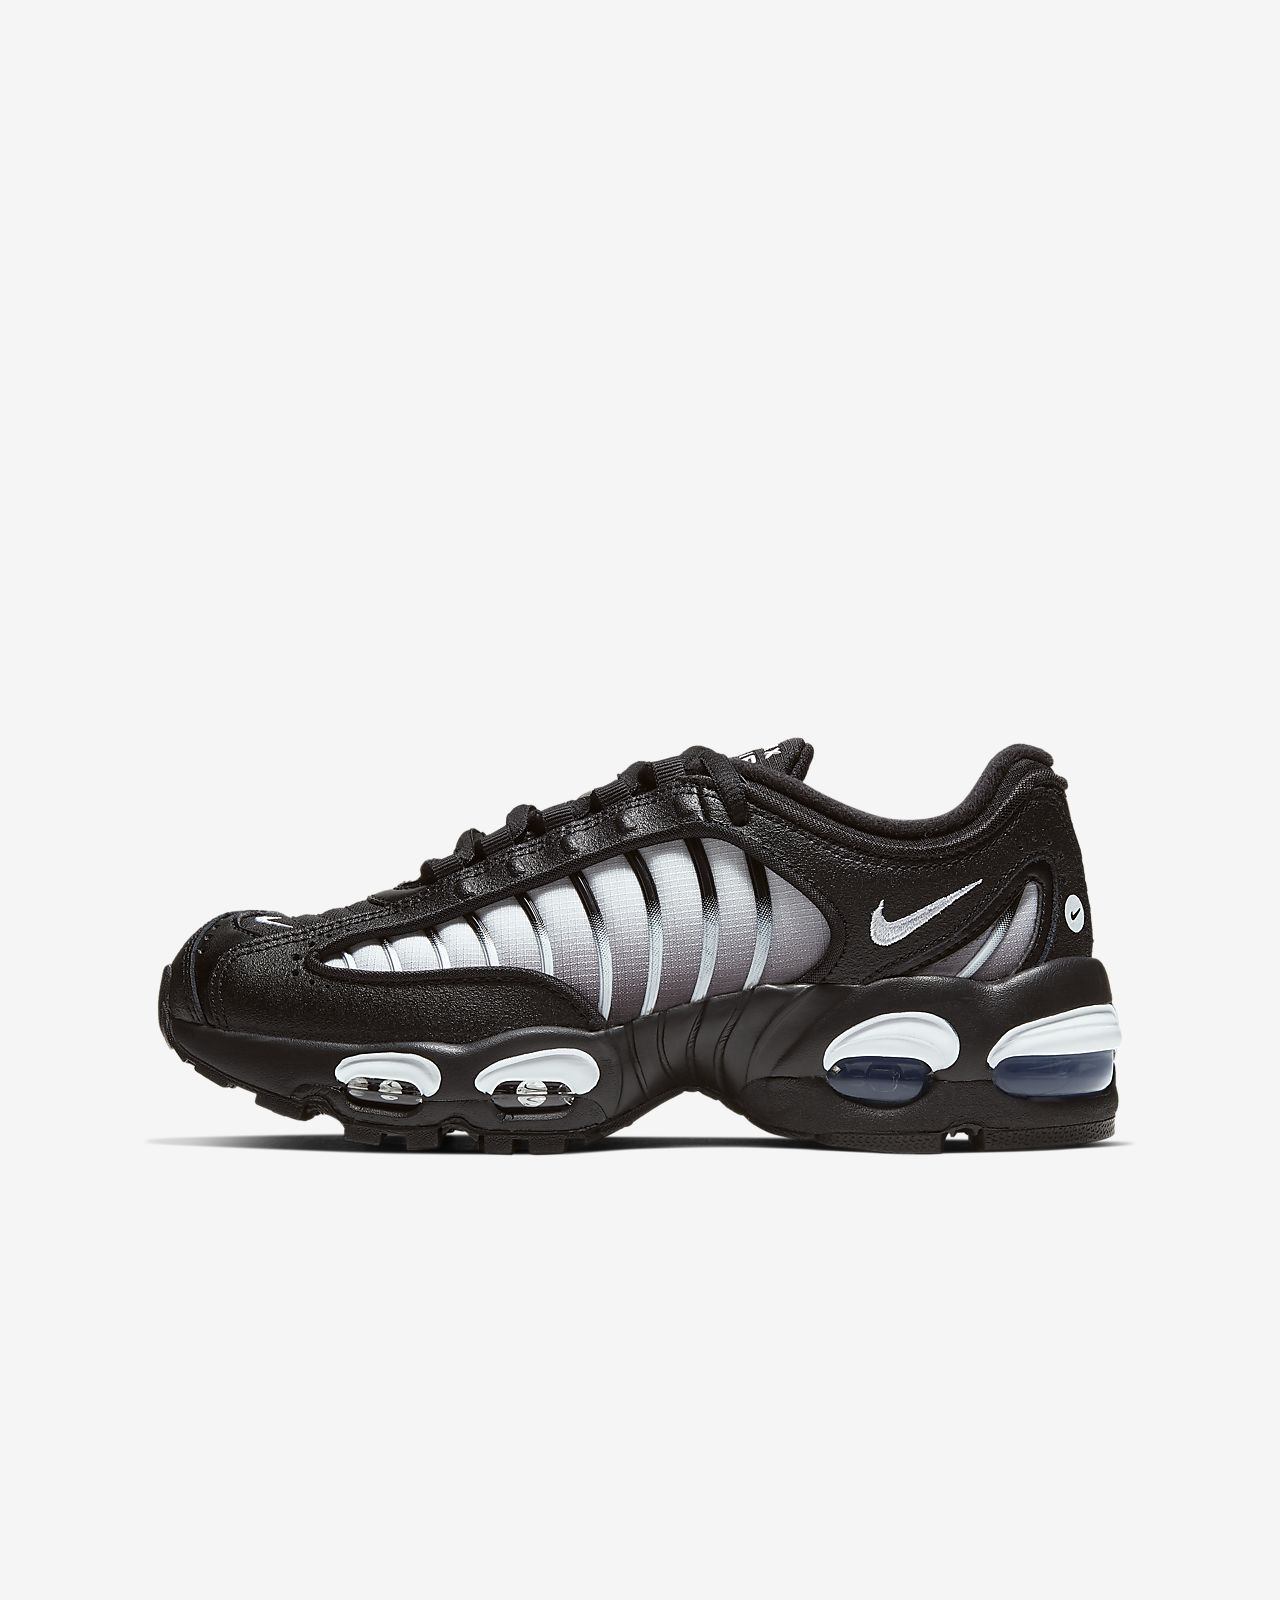 Nike Air max 95's kids size 5.5y